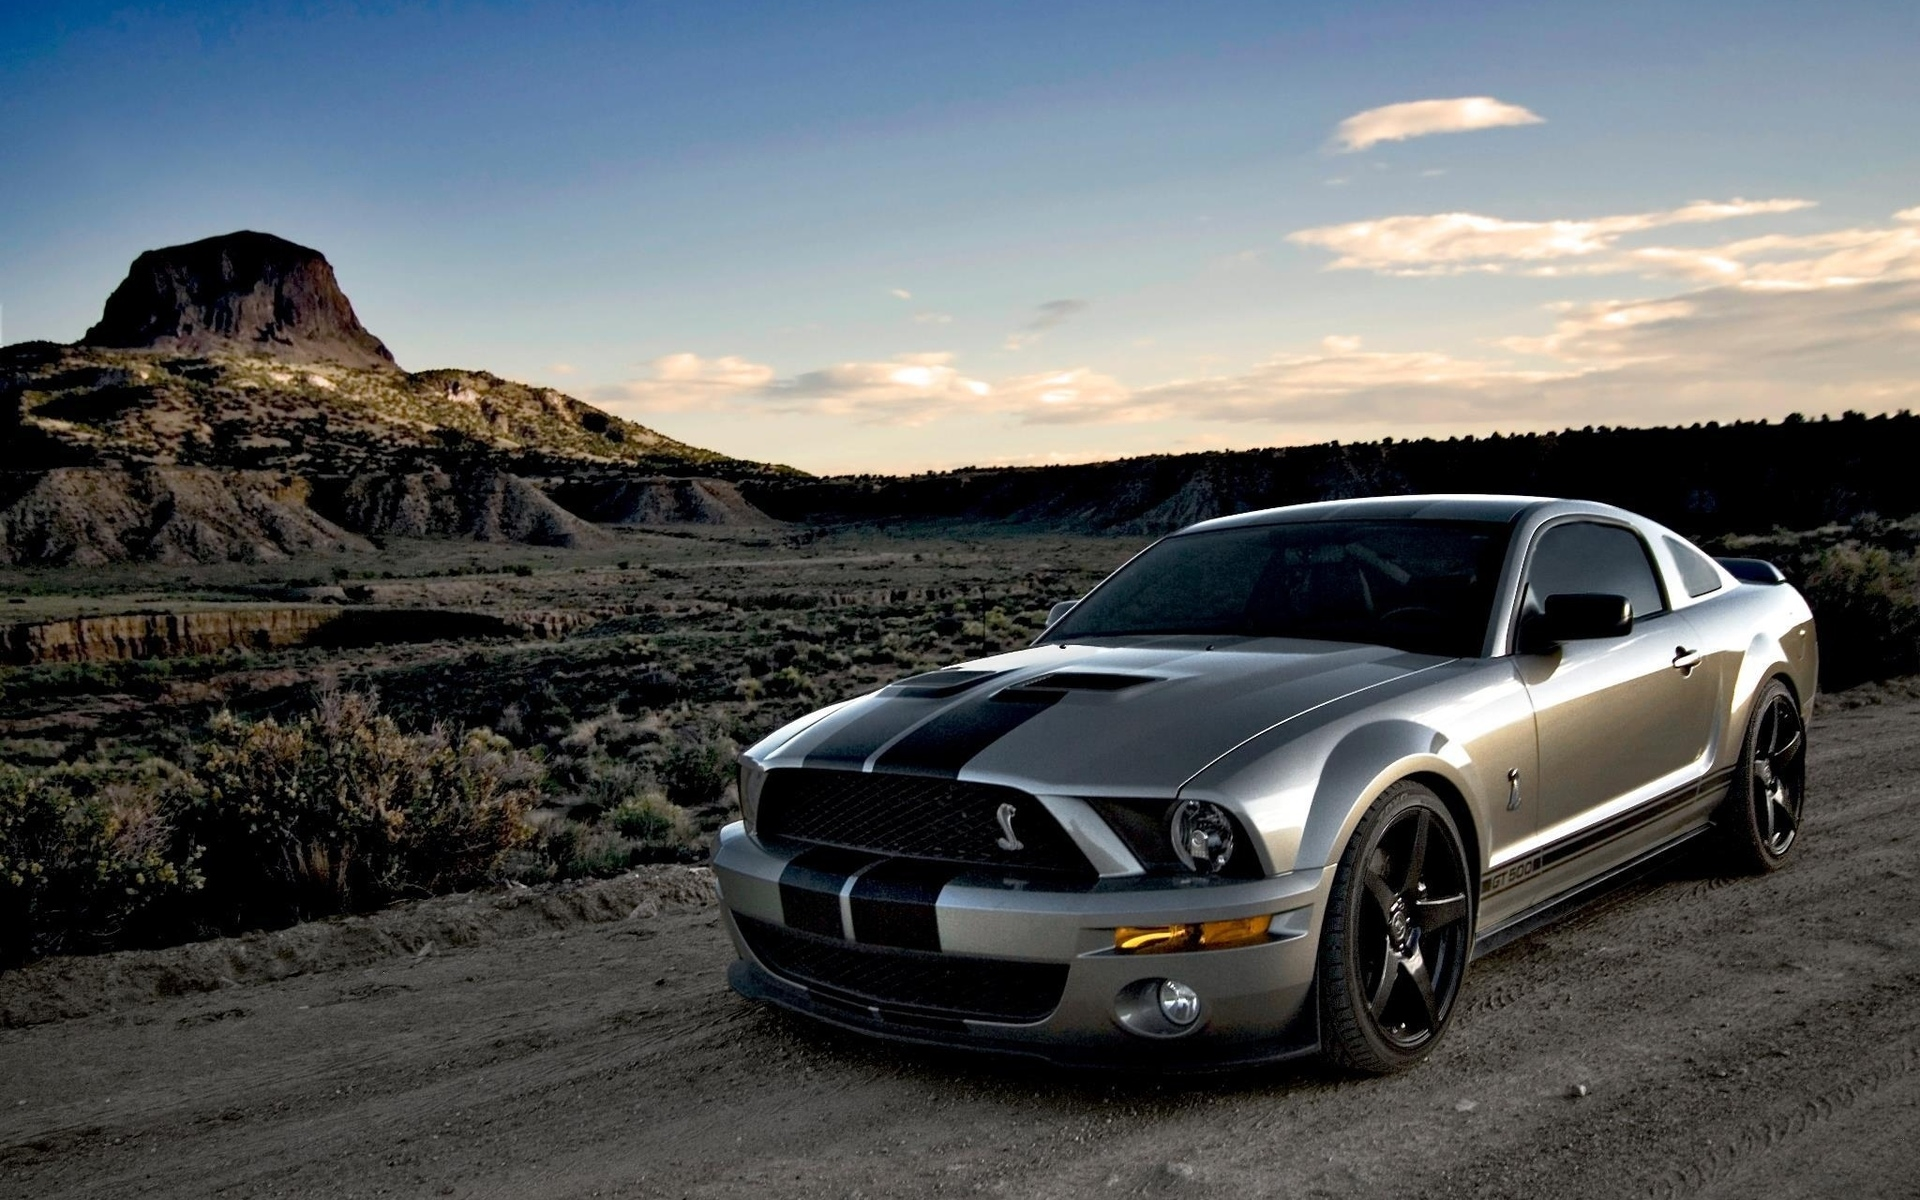 Free Download Ford Mustang Wallpaper Hd 1920x1200 For Your